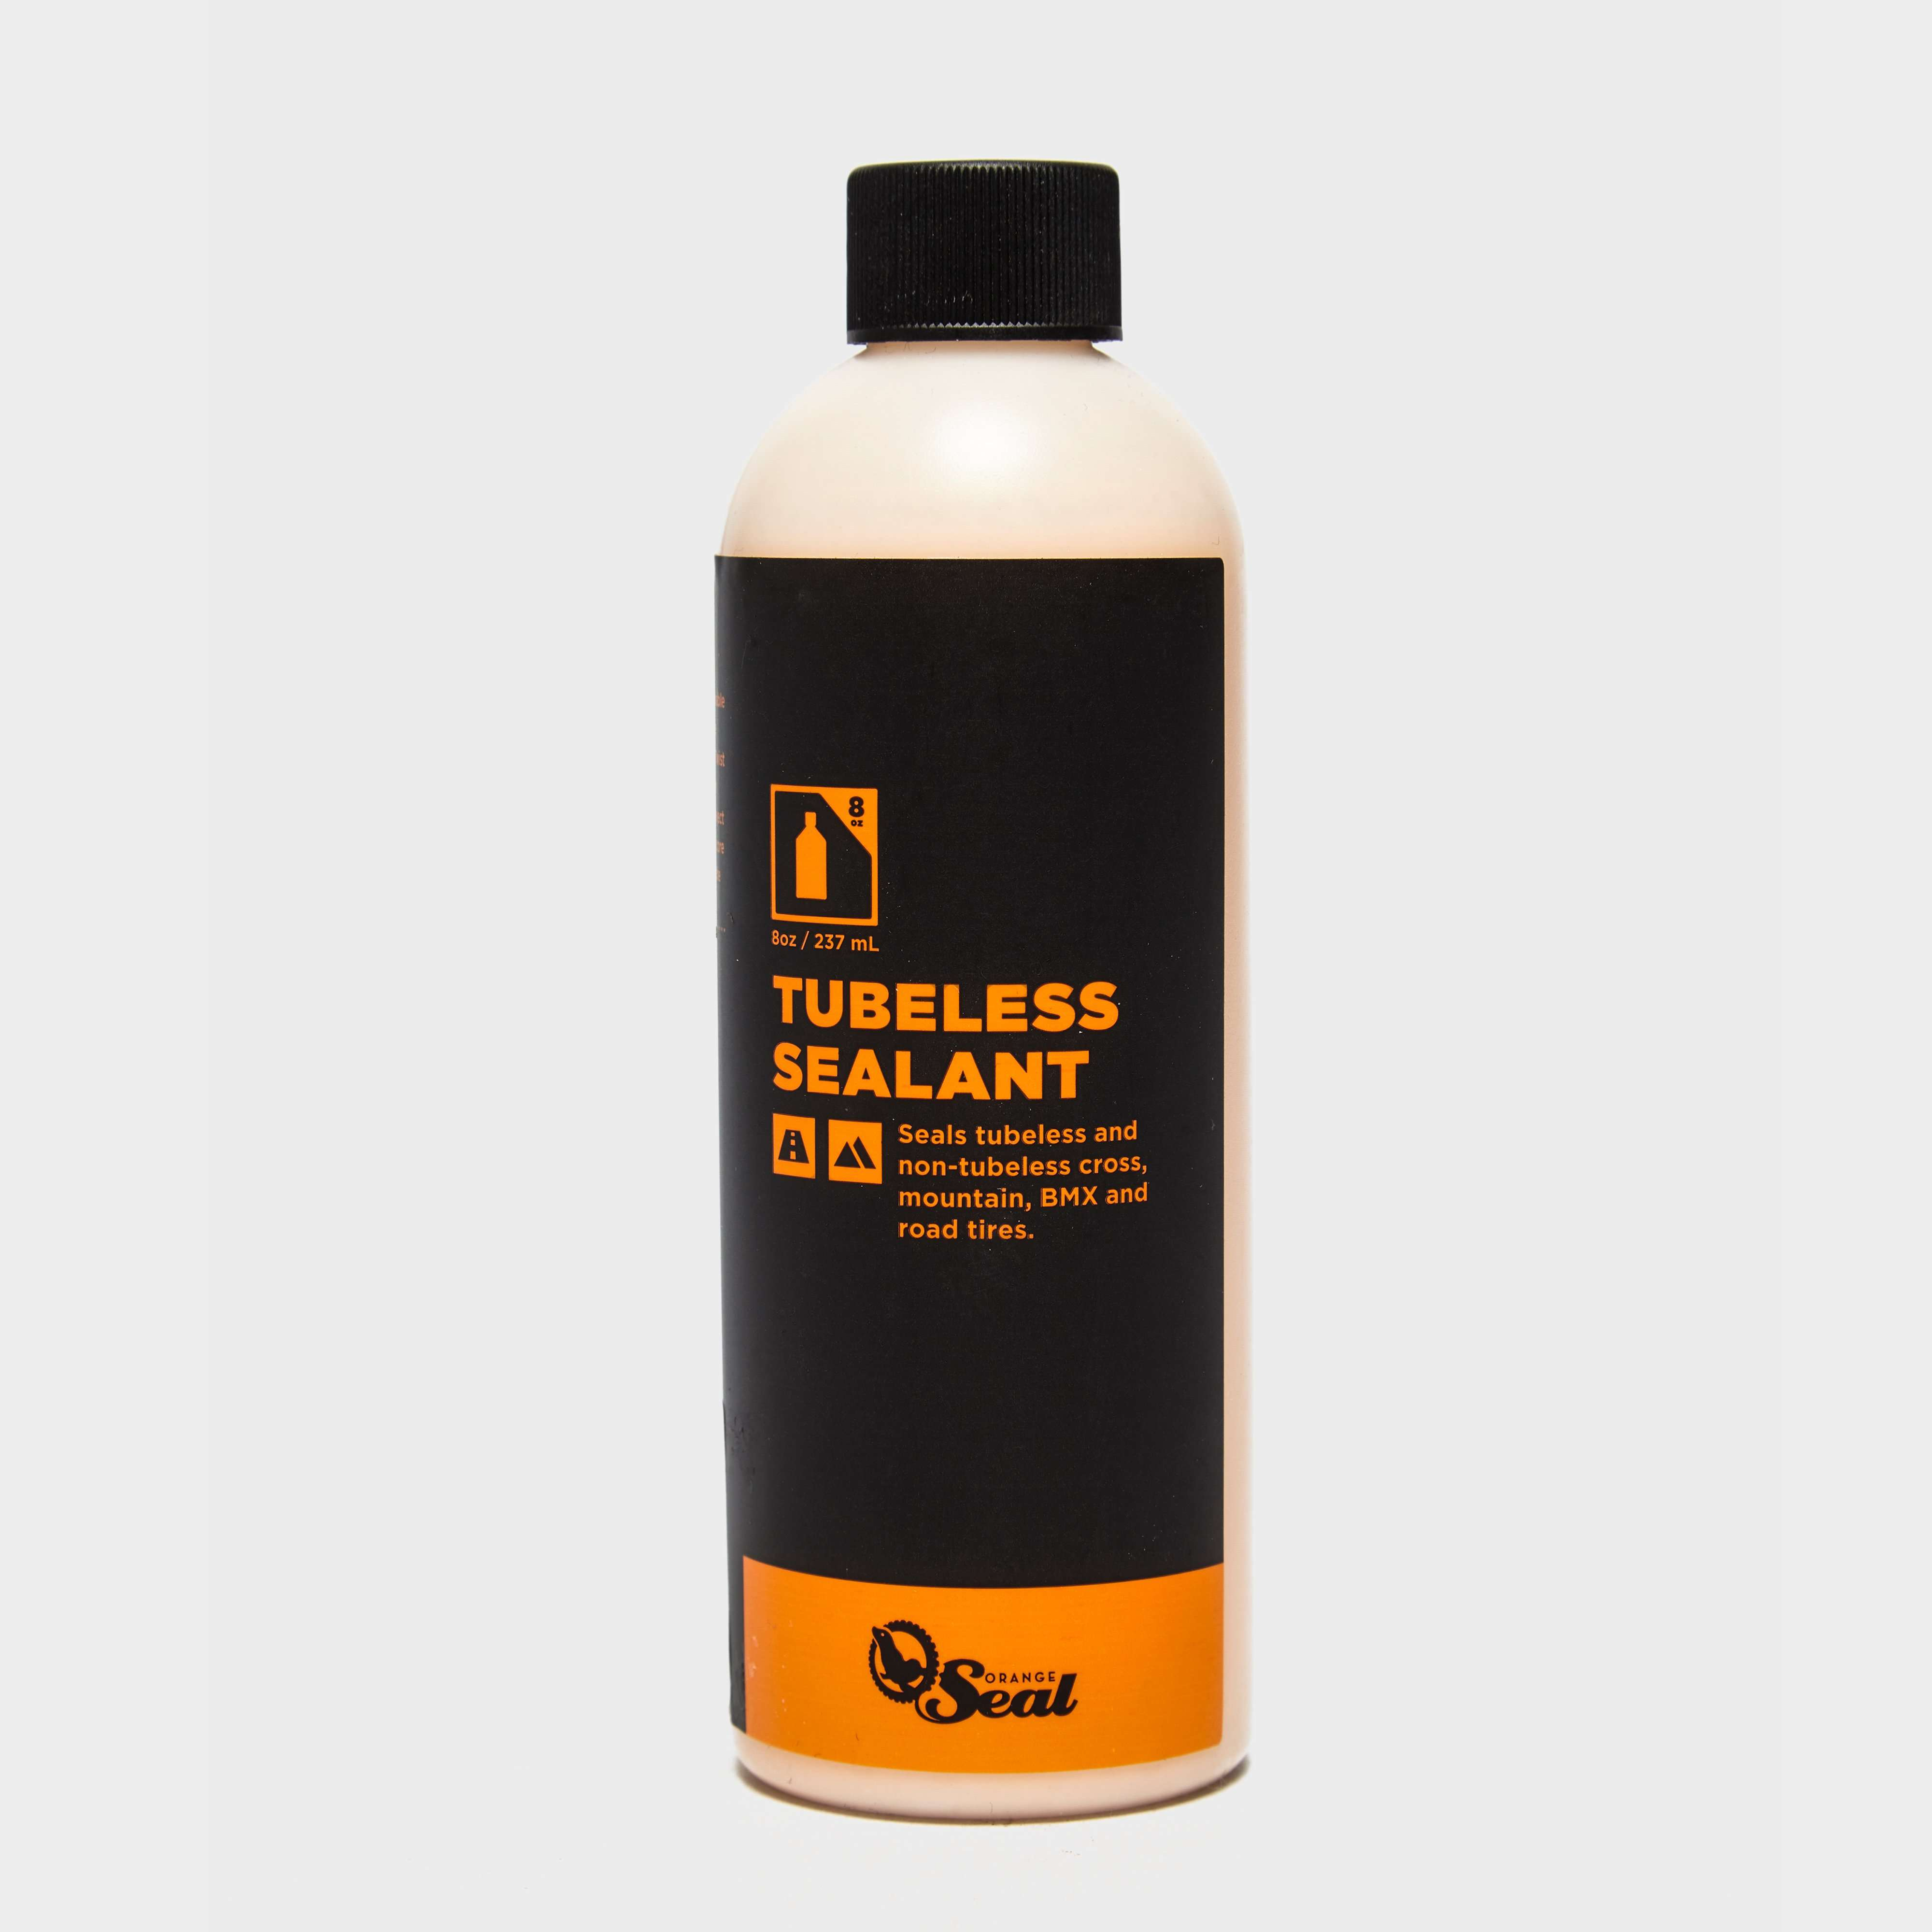 ORANGE SEAL Tubeless Sealant Refill